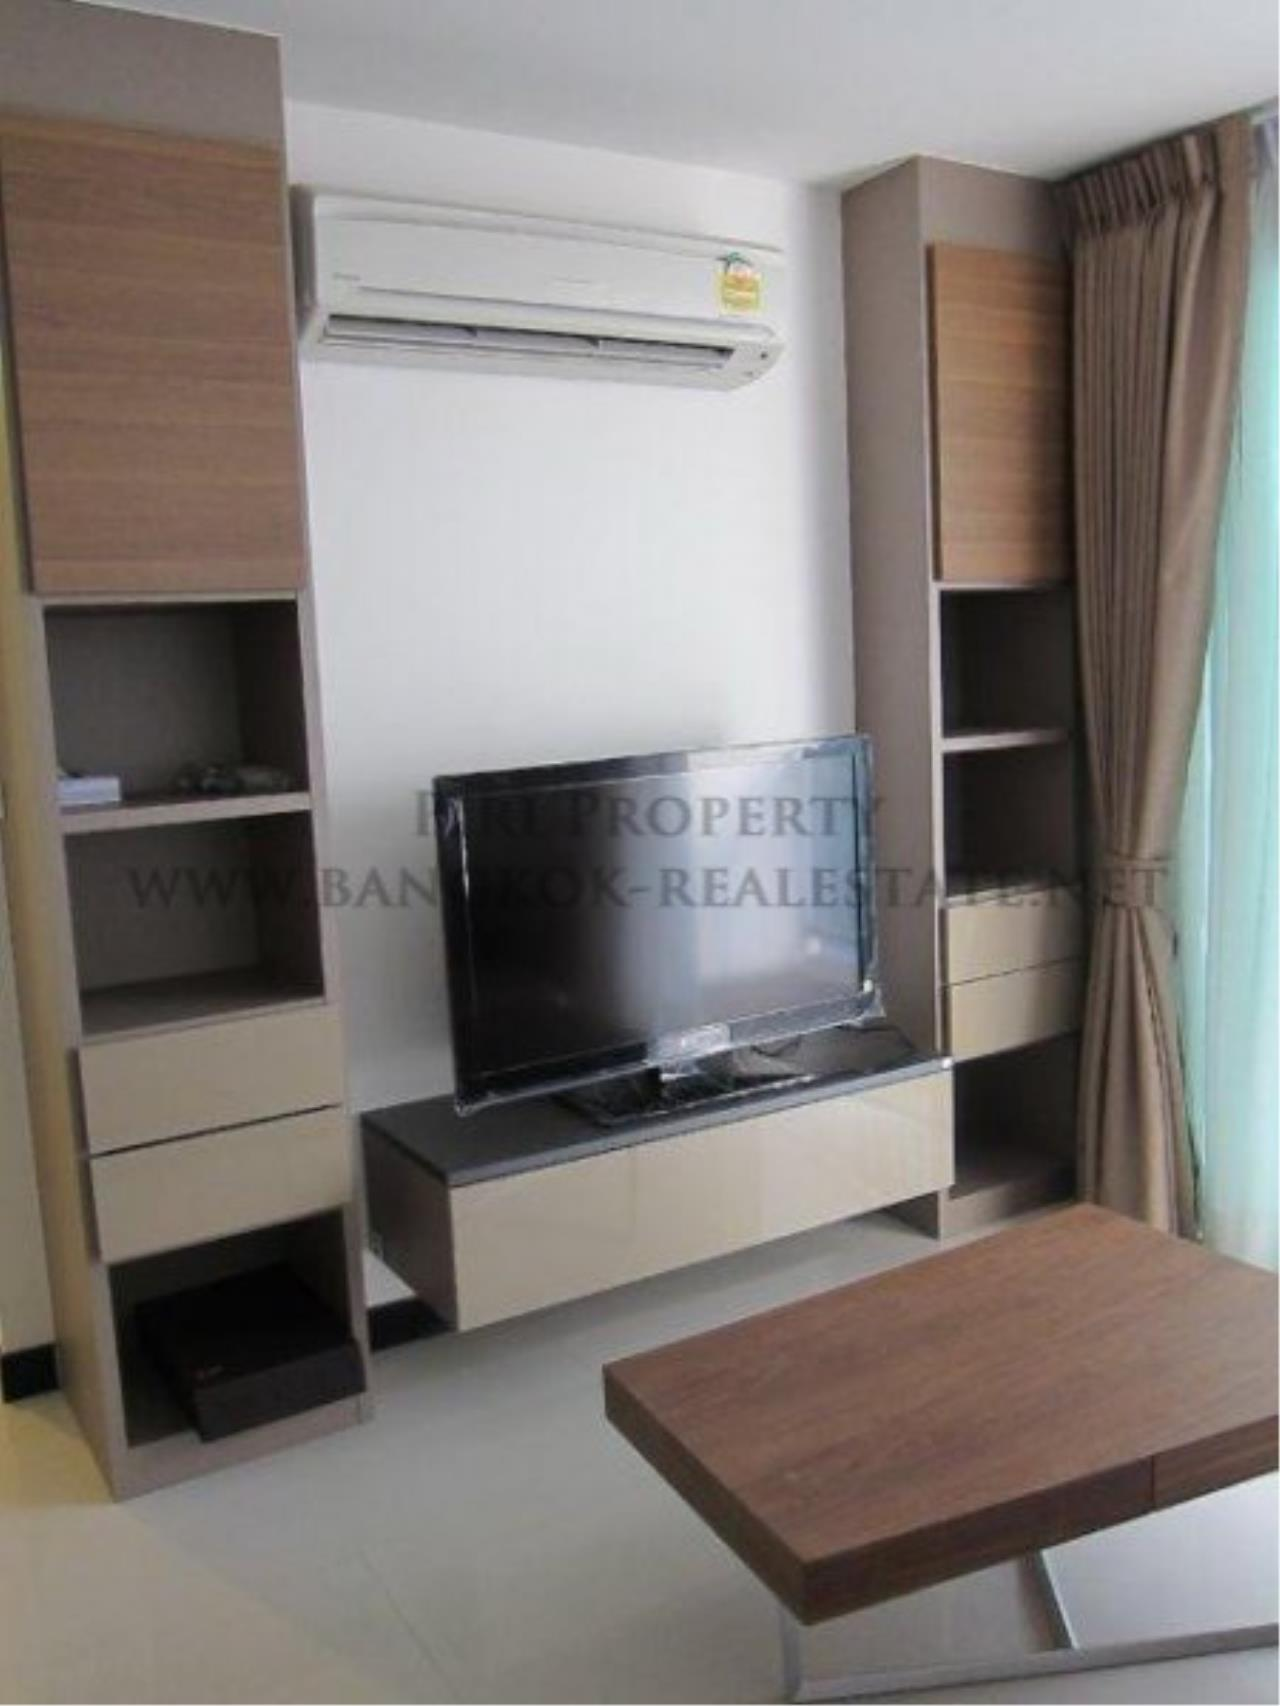 Piri Property Agency's 2 Bedroom Condo in Asoke - Voque 16 for Rent - Free Shuttle to BTS 2